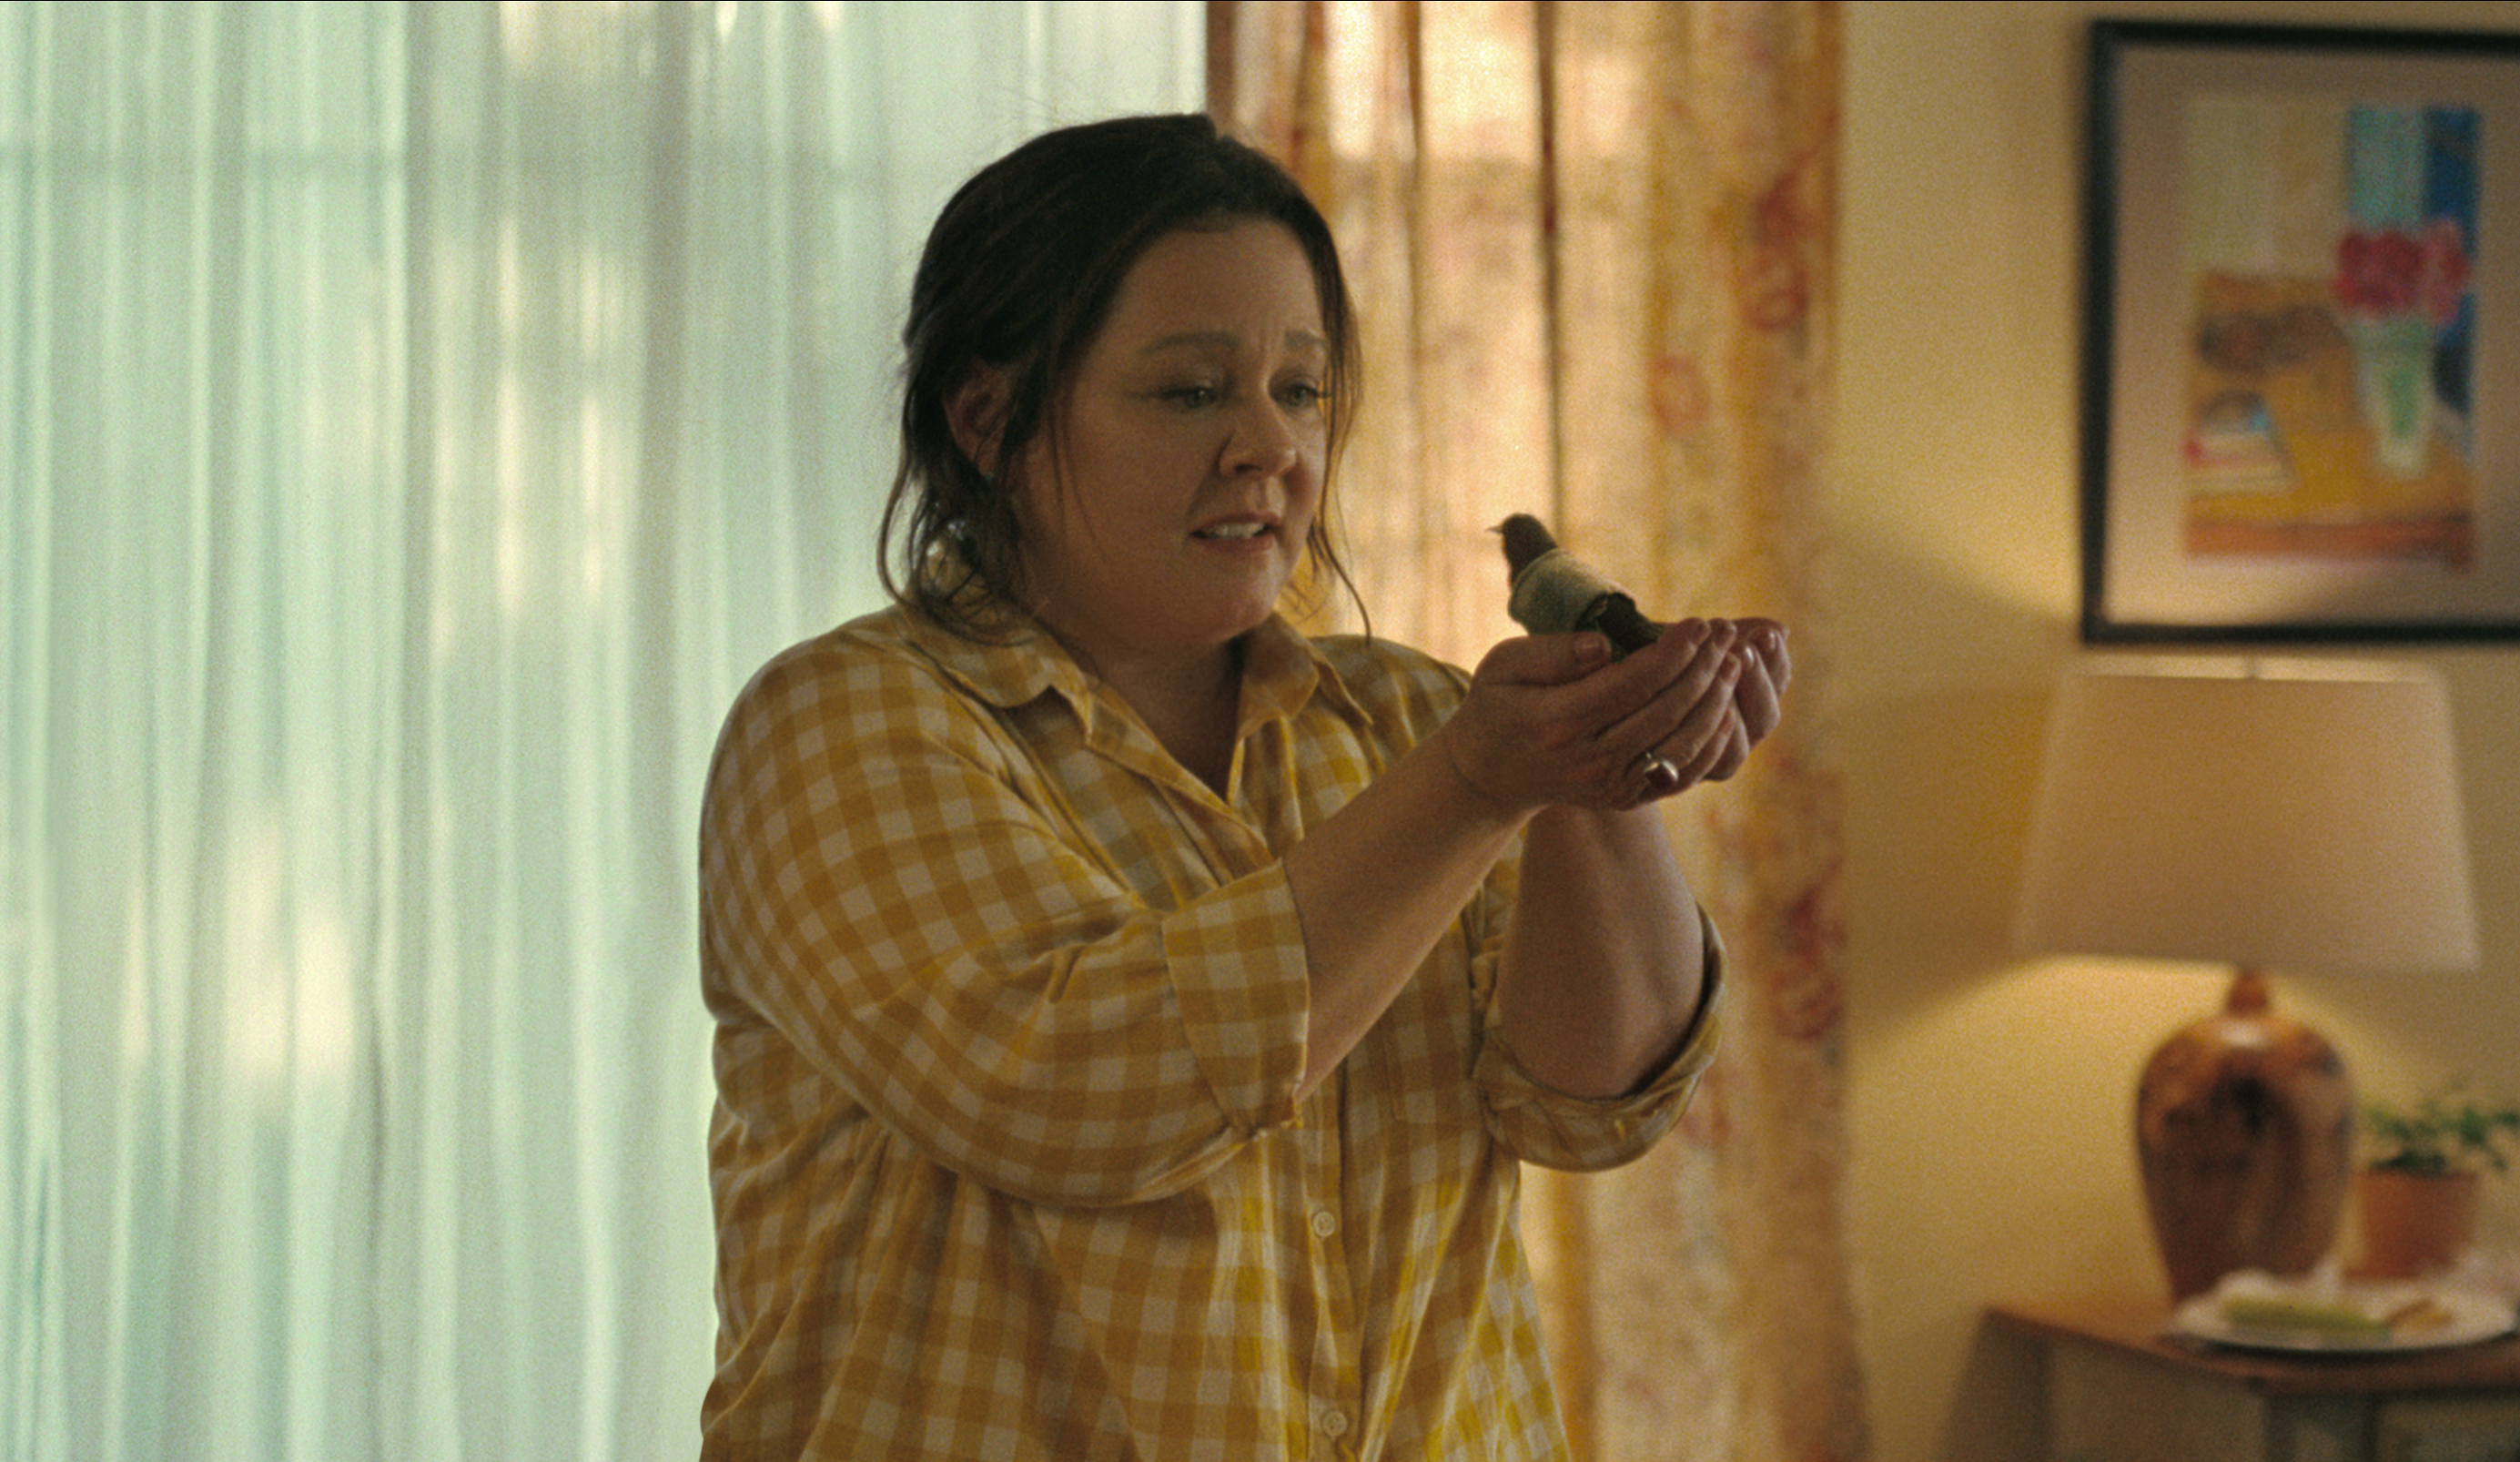 'The Starling' Movie Review: Depression, Anger, and Was That a Transphobic Joke?